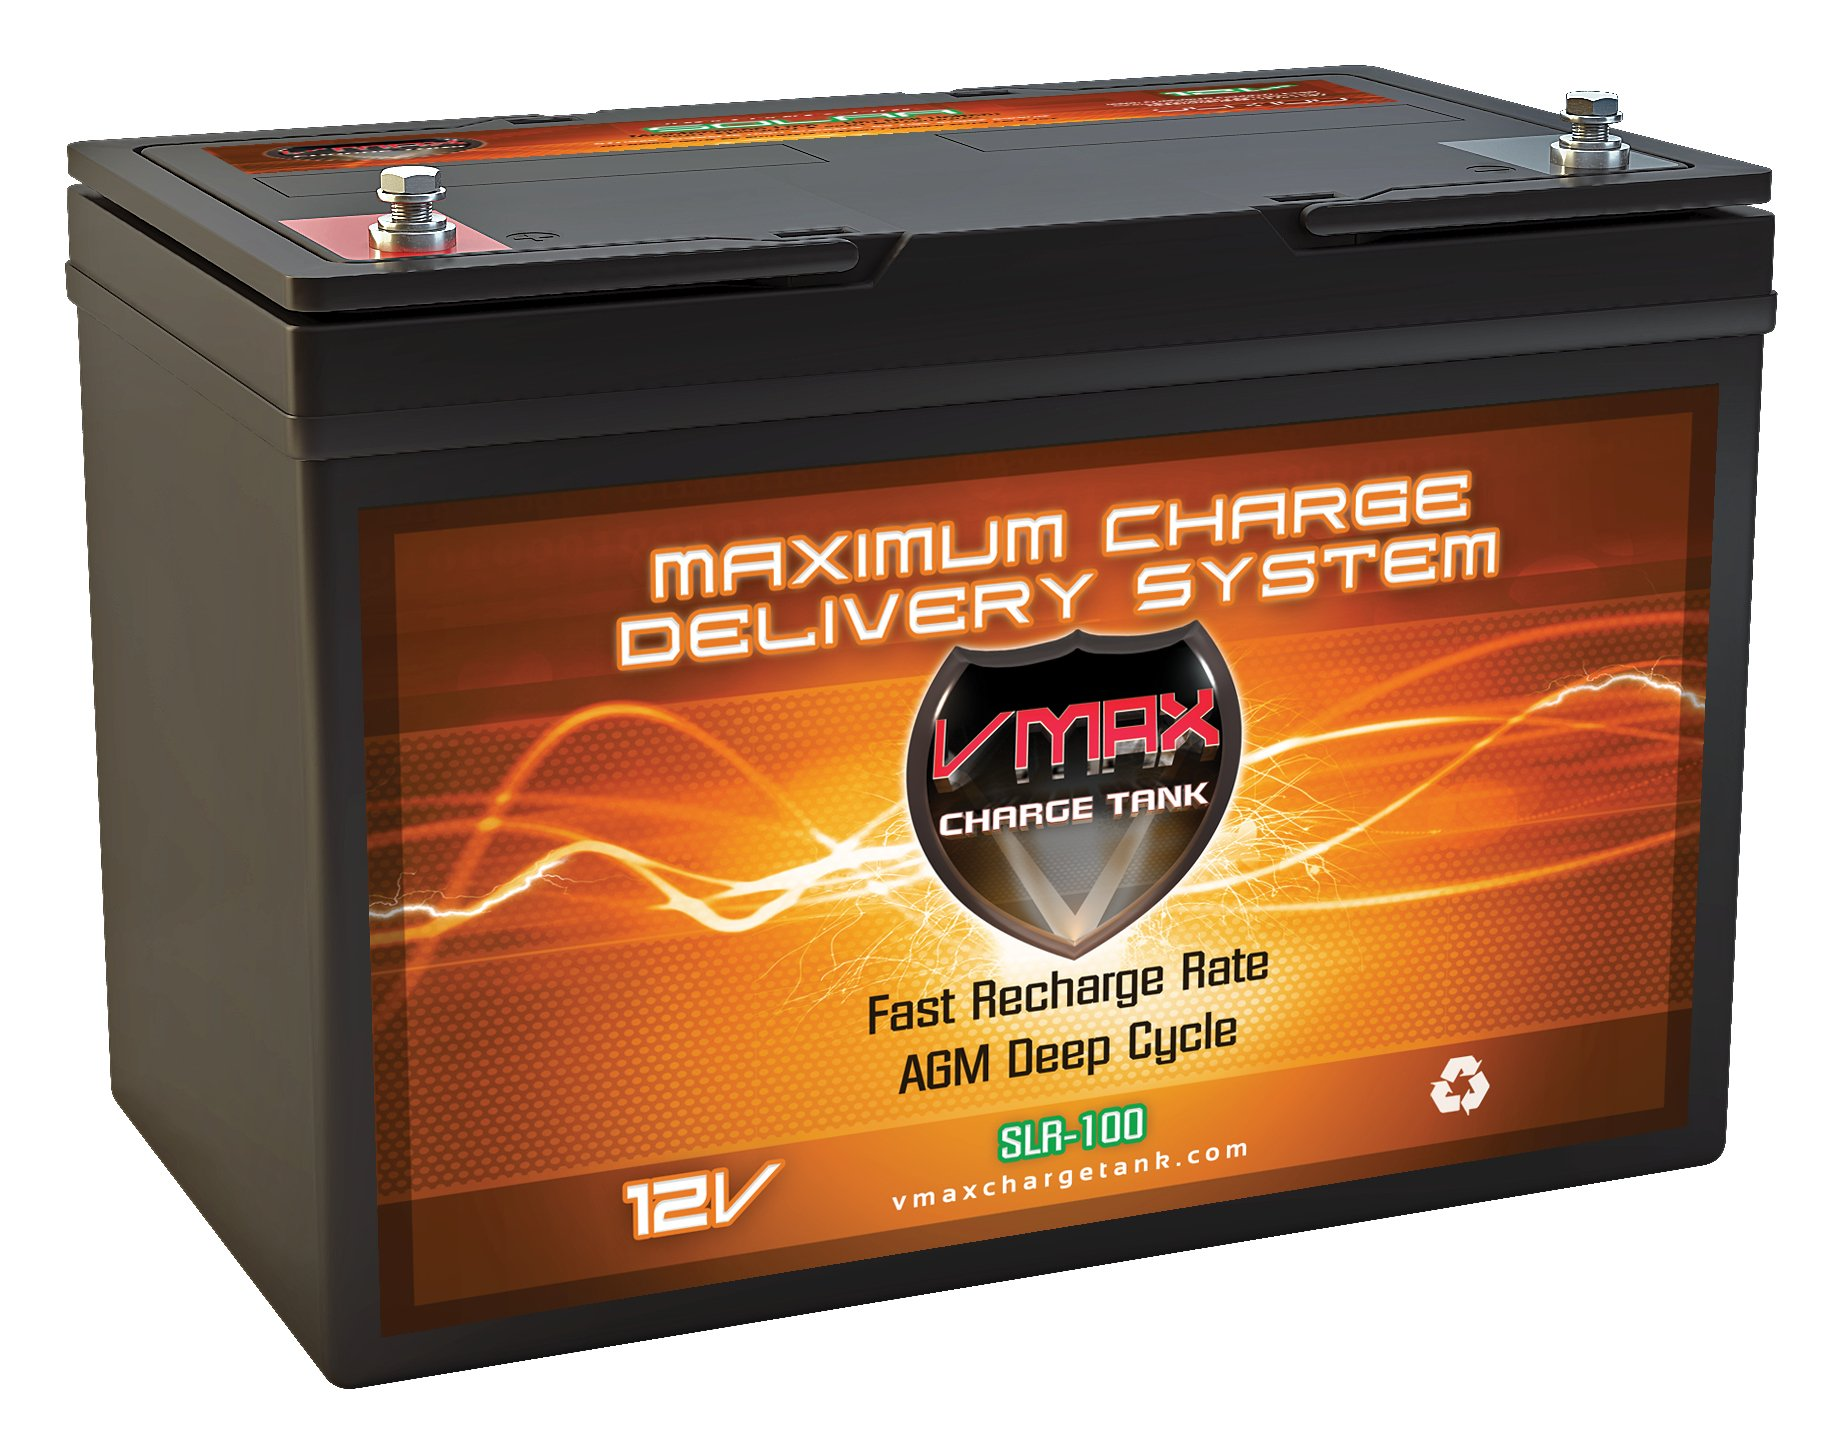 Vmaxtanks VMAXSLR100 AGM Sealed deep cycle 12V 100AH battery for Use with PV Solar Panel by VMAX Solar